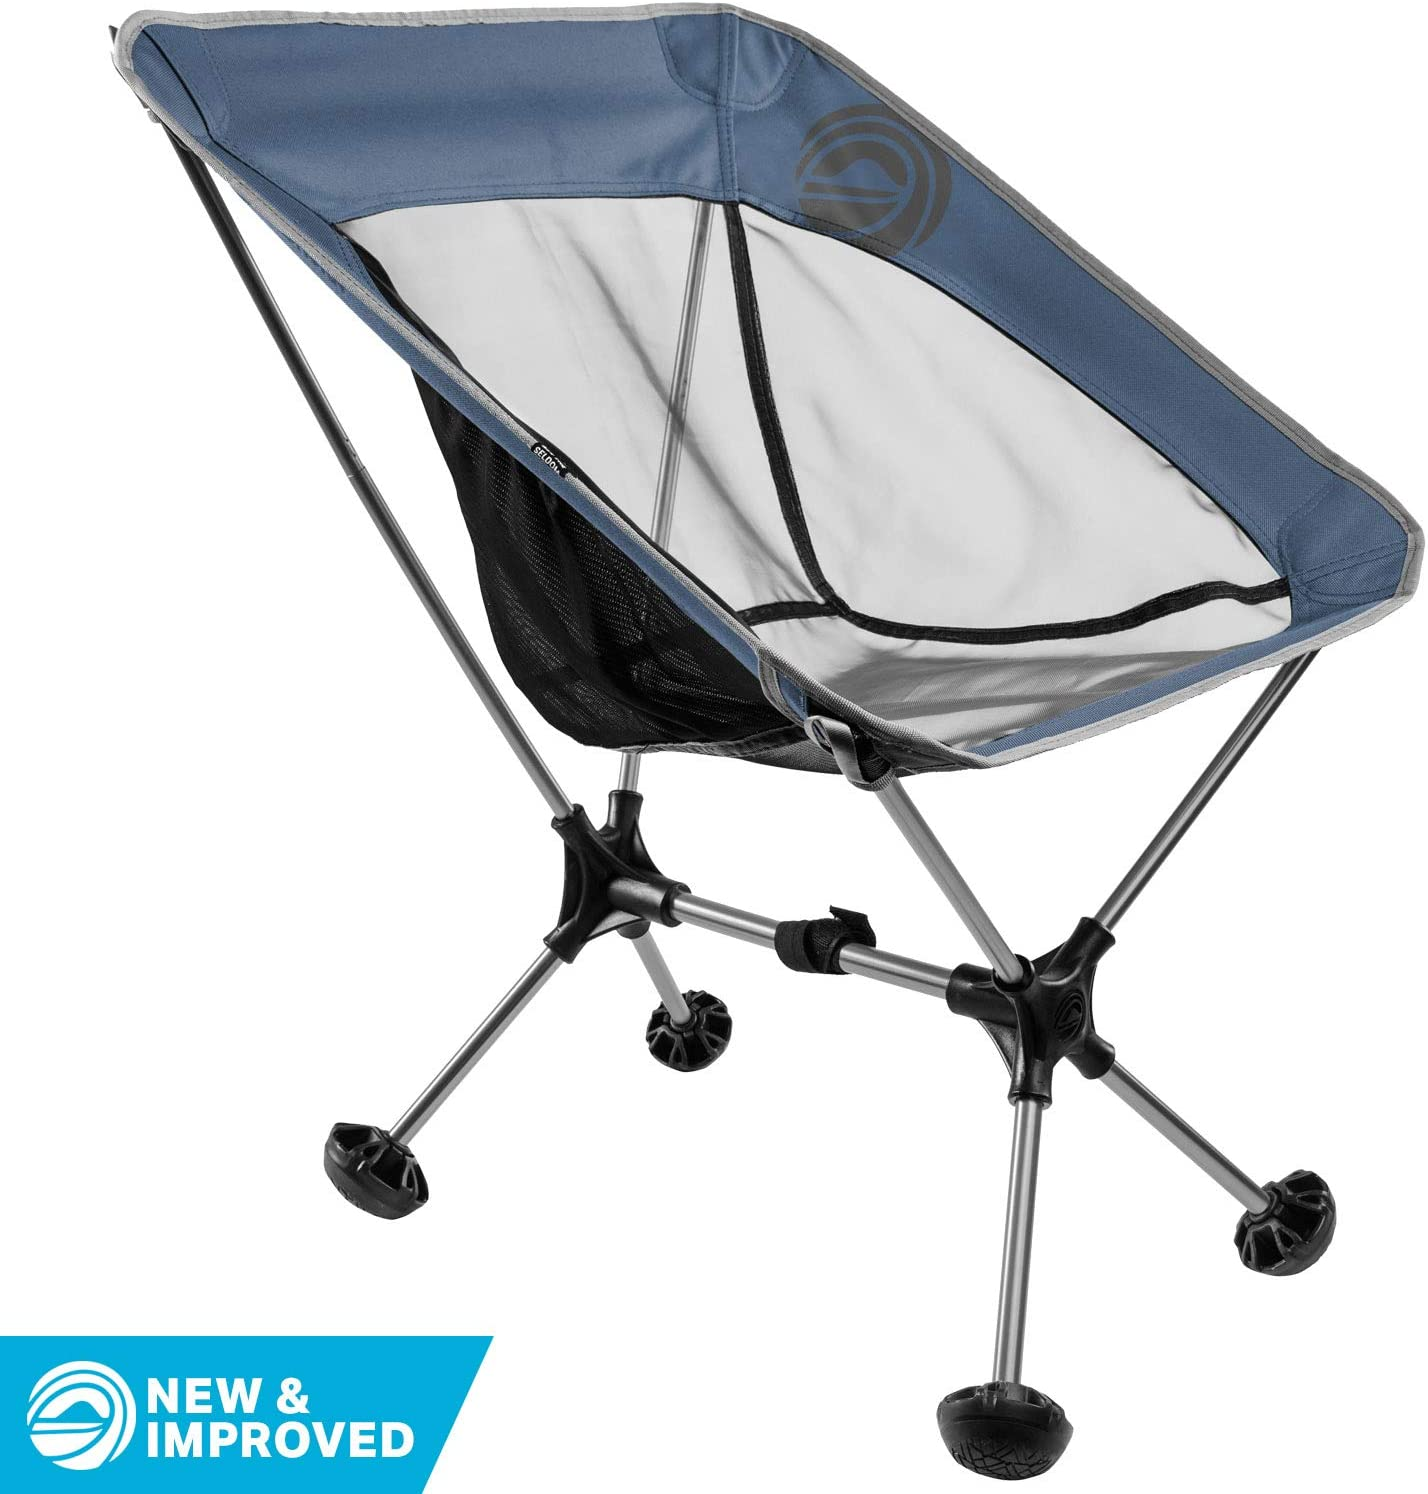 for Adults Travel Beach Backpacking and Camping Wildhorn Terralite Ultralight Heavy Duty Outdoor Folding Camp Chair